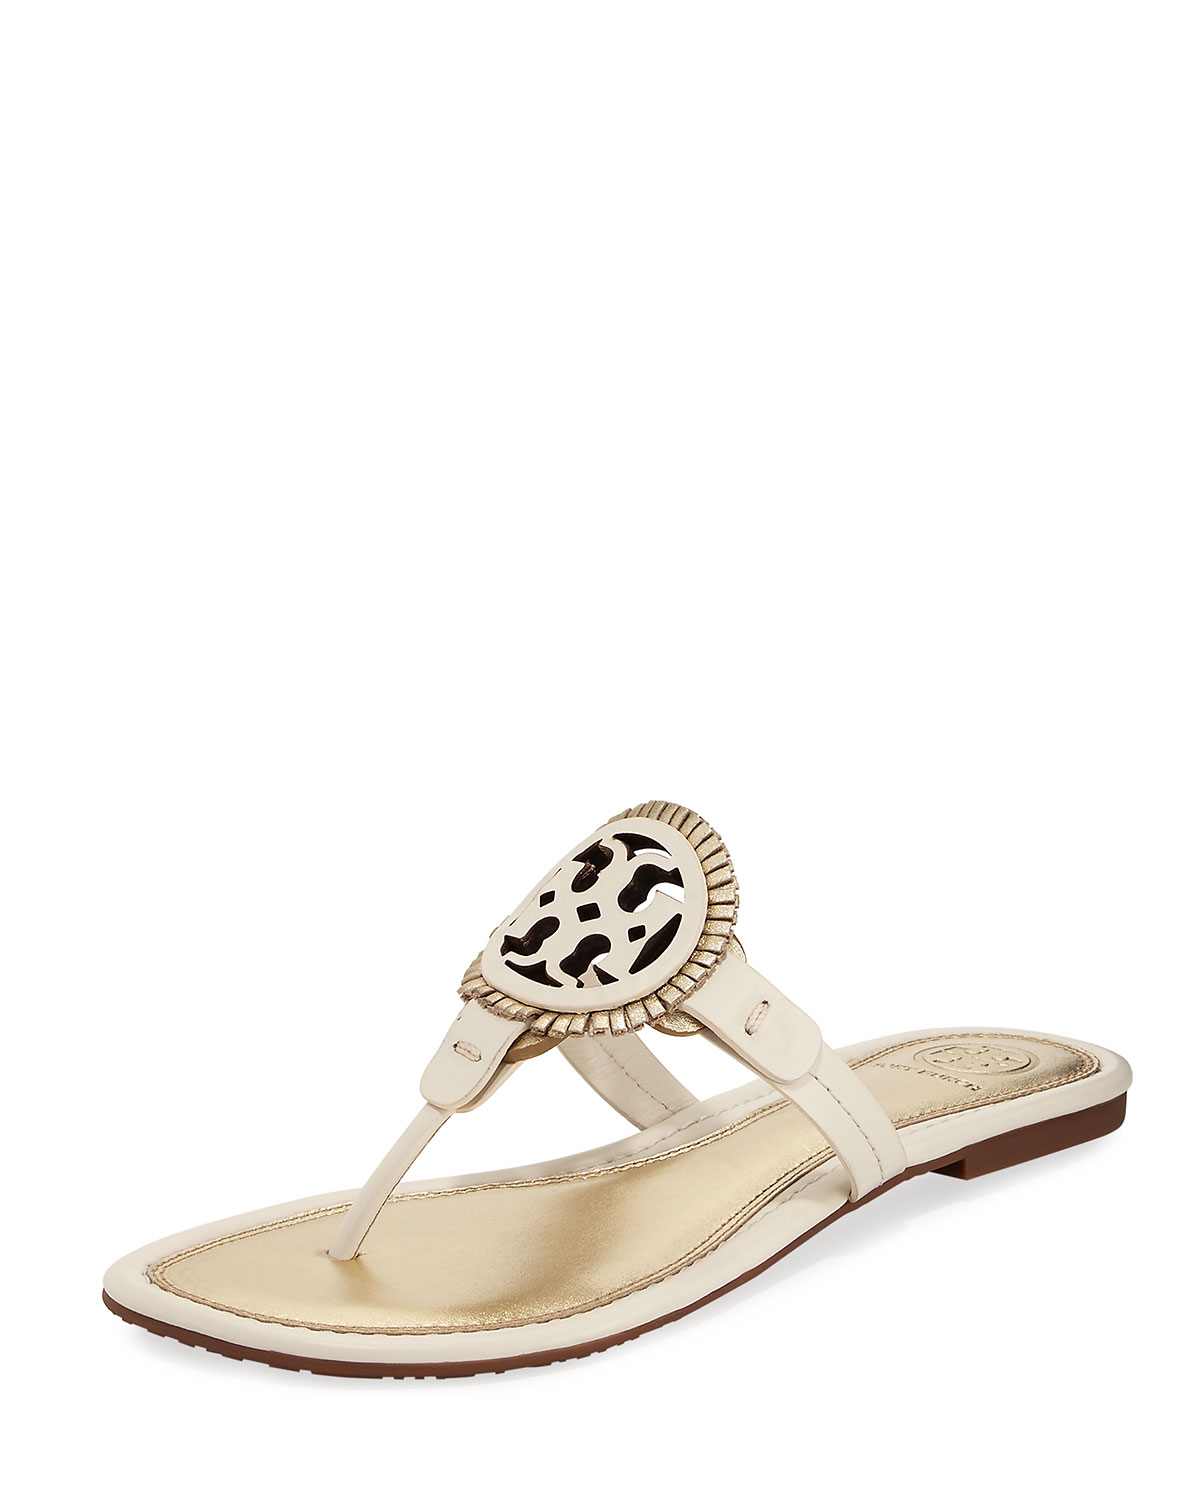 77bed80675a4 Tory Burch Miller Fringe Flat Thong Sandals